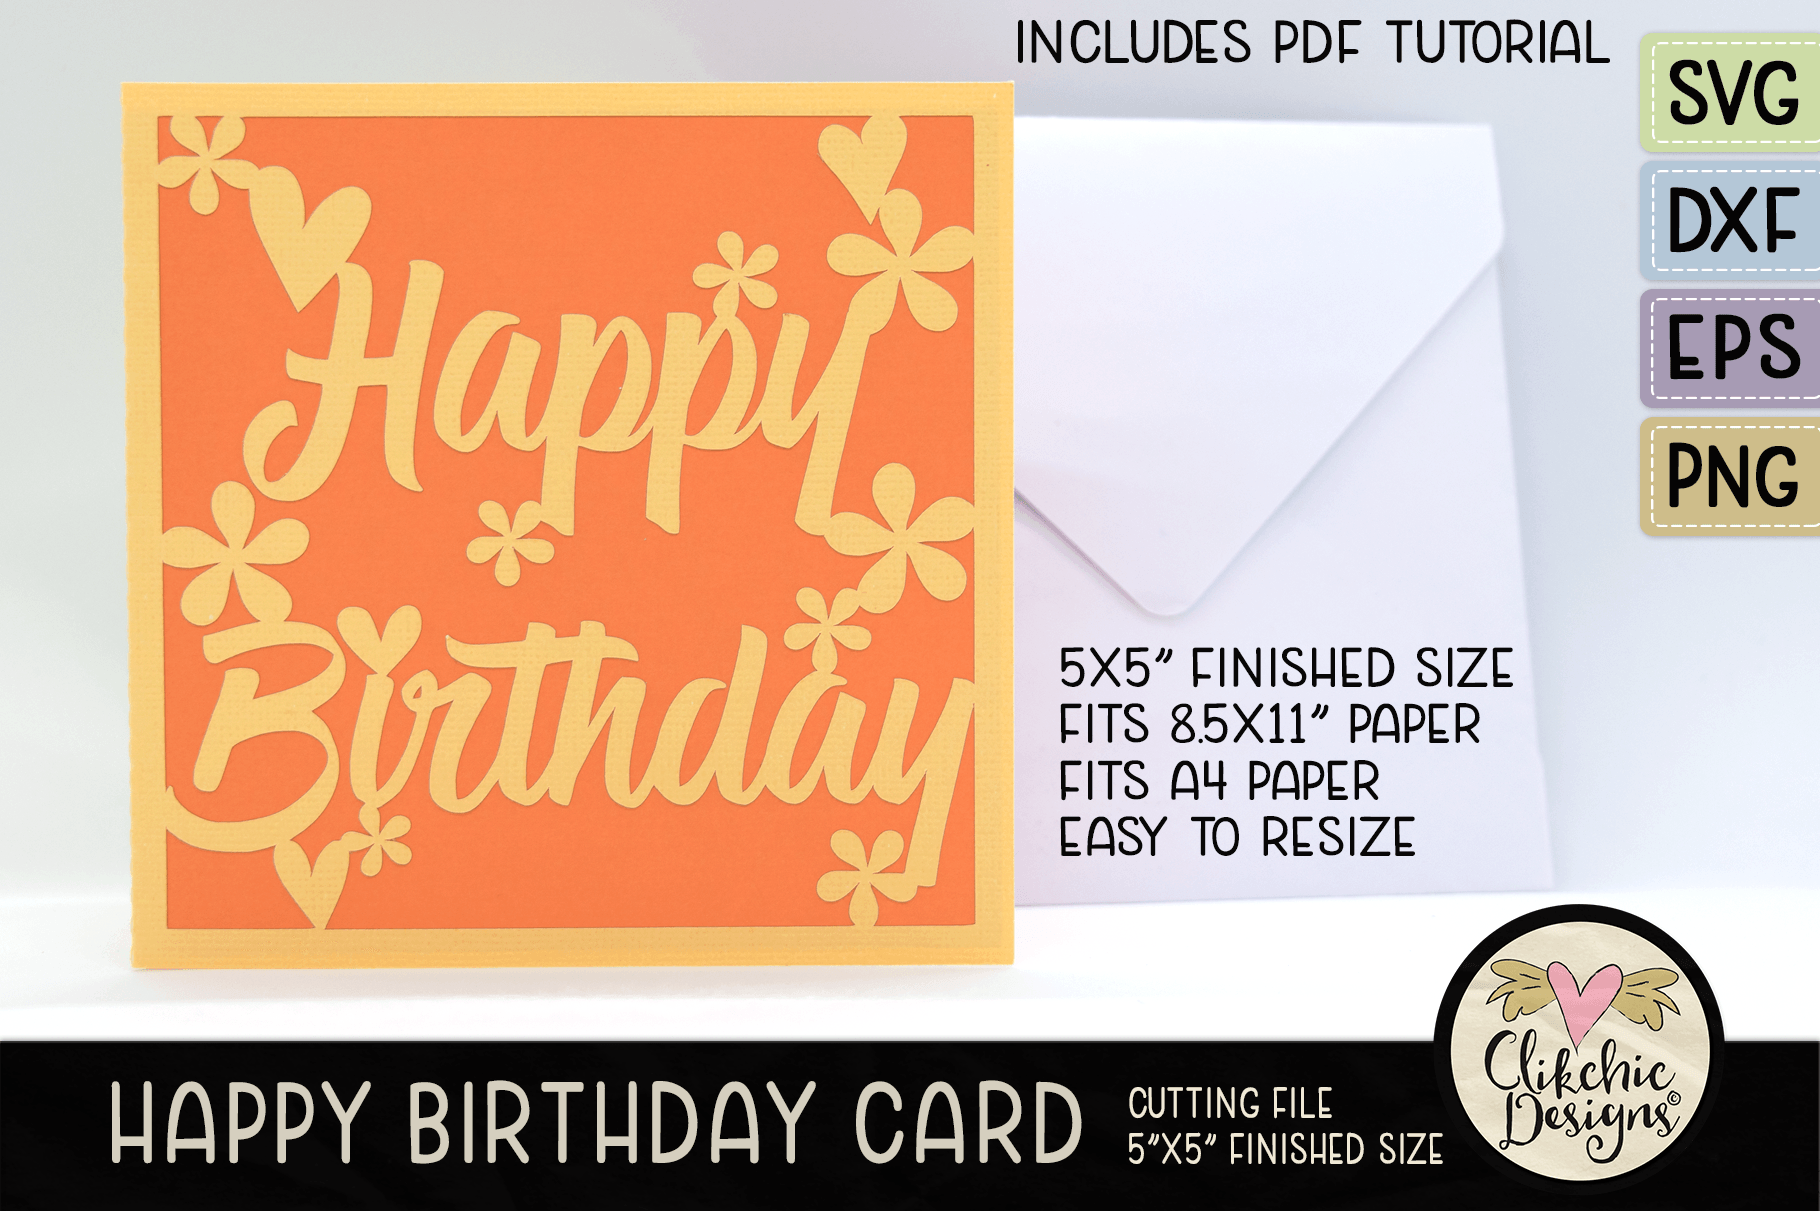 Floral Happy Birthday Card SVG File